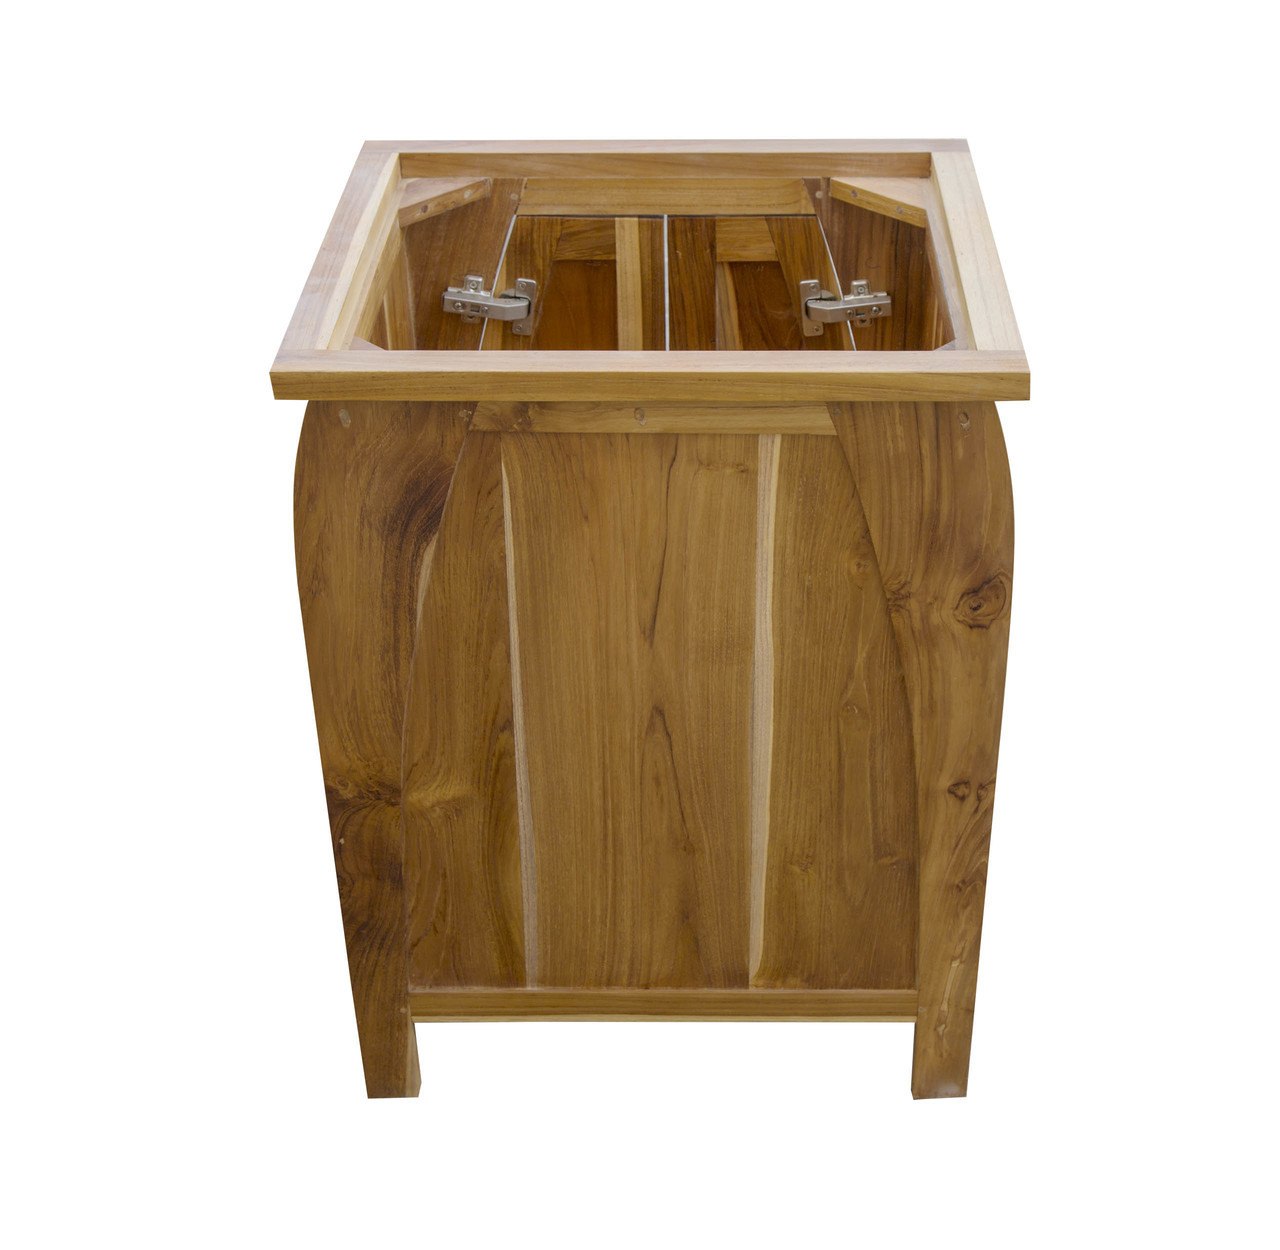 """EcoDecors Tranquility 24"""" Teak Wood Fully Assembled Free Standing Bathroom Vanity in EarthyTeak Finish"""